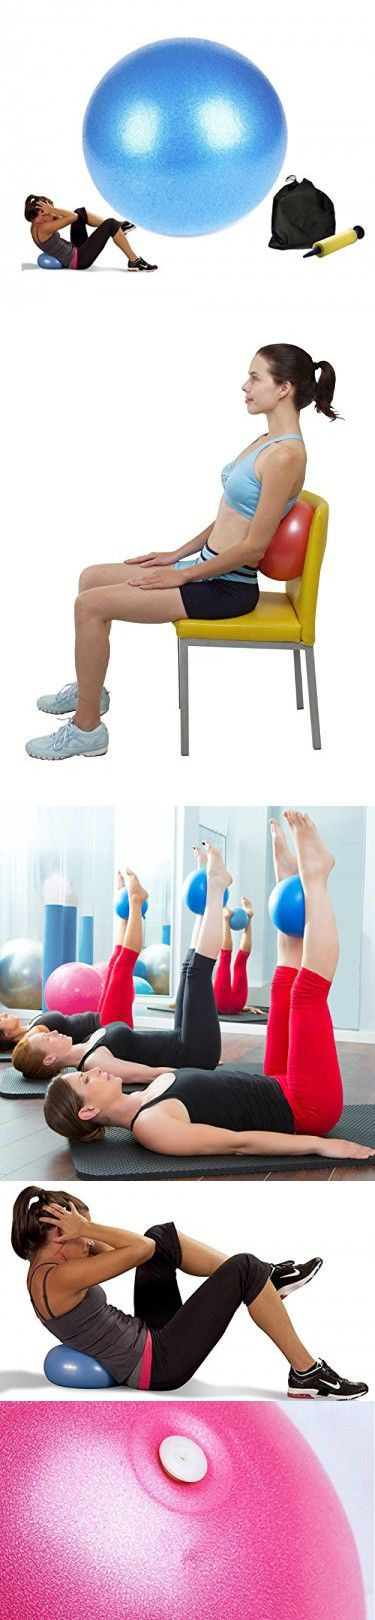 Small Exercise Ball, Mini Fitness Ball for Barre Pilates Balance Gym Yoga Balance Stability Bender Physical Therapy